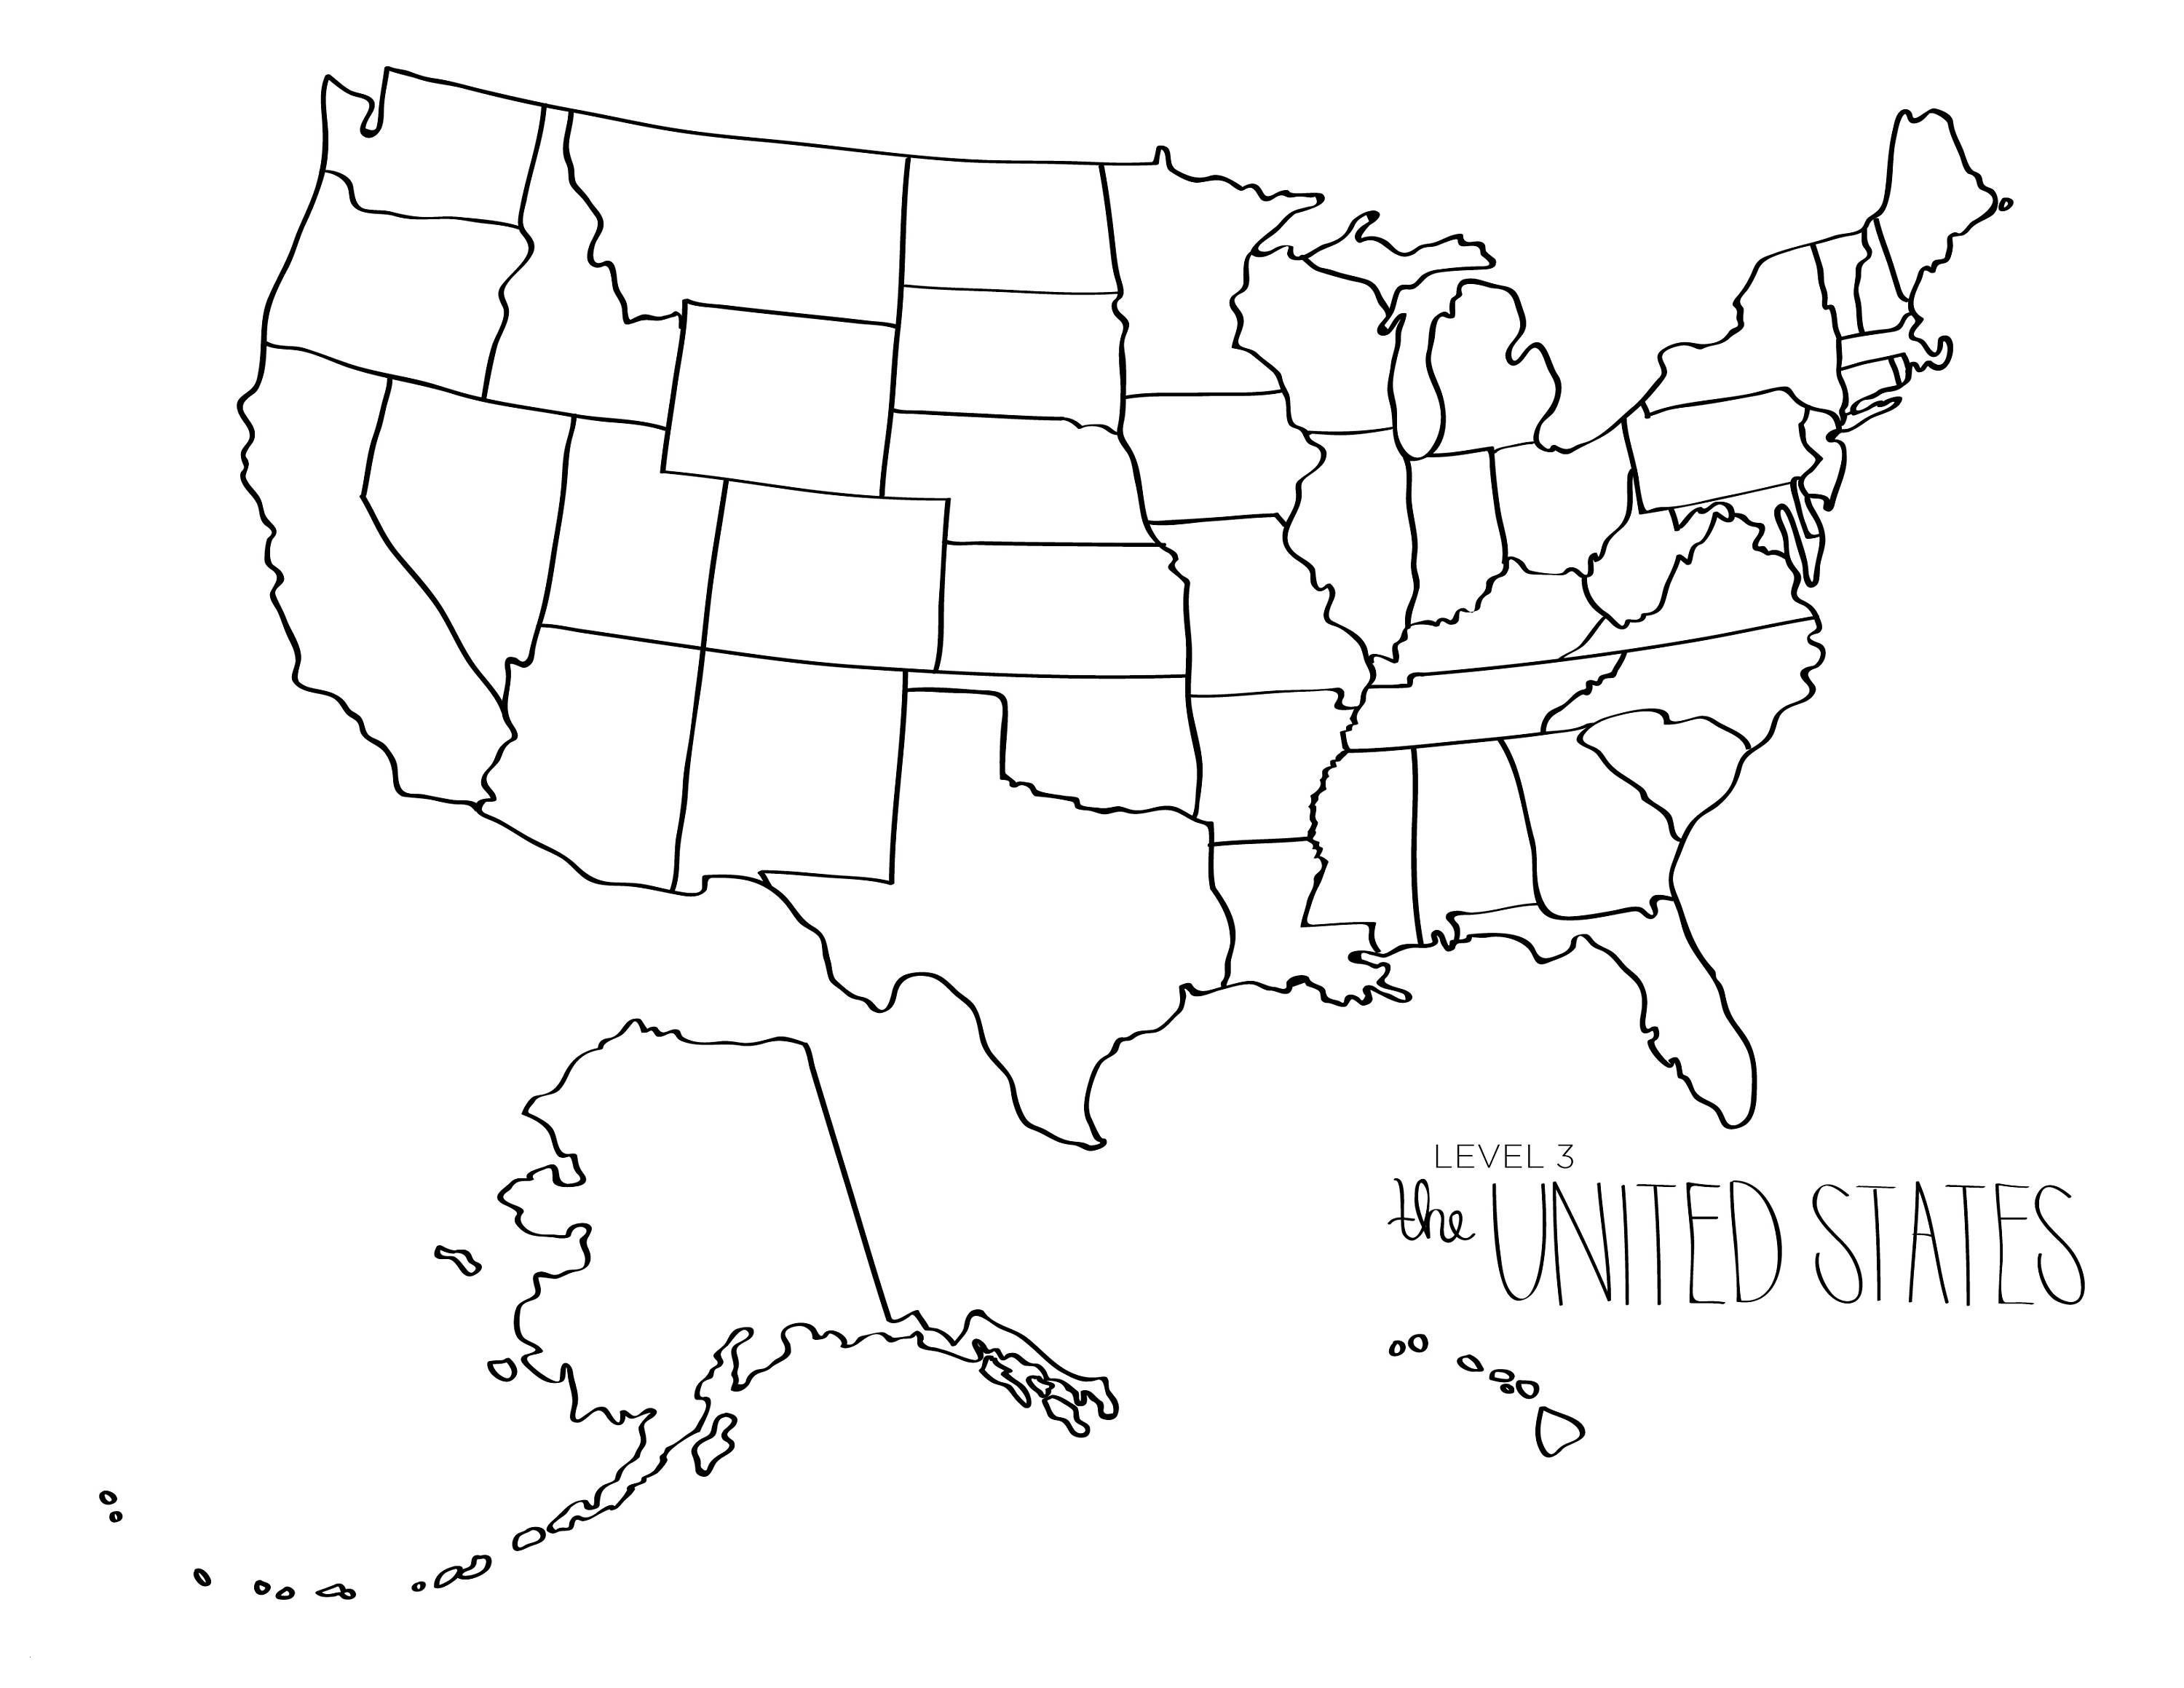 United States Blank Map Printable Save United States Map Coloring Page New Blank Printable Map the